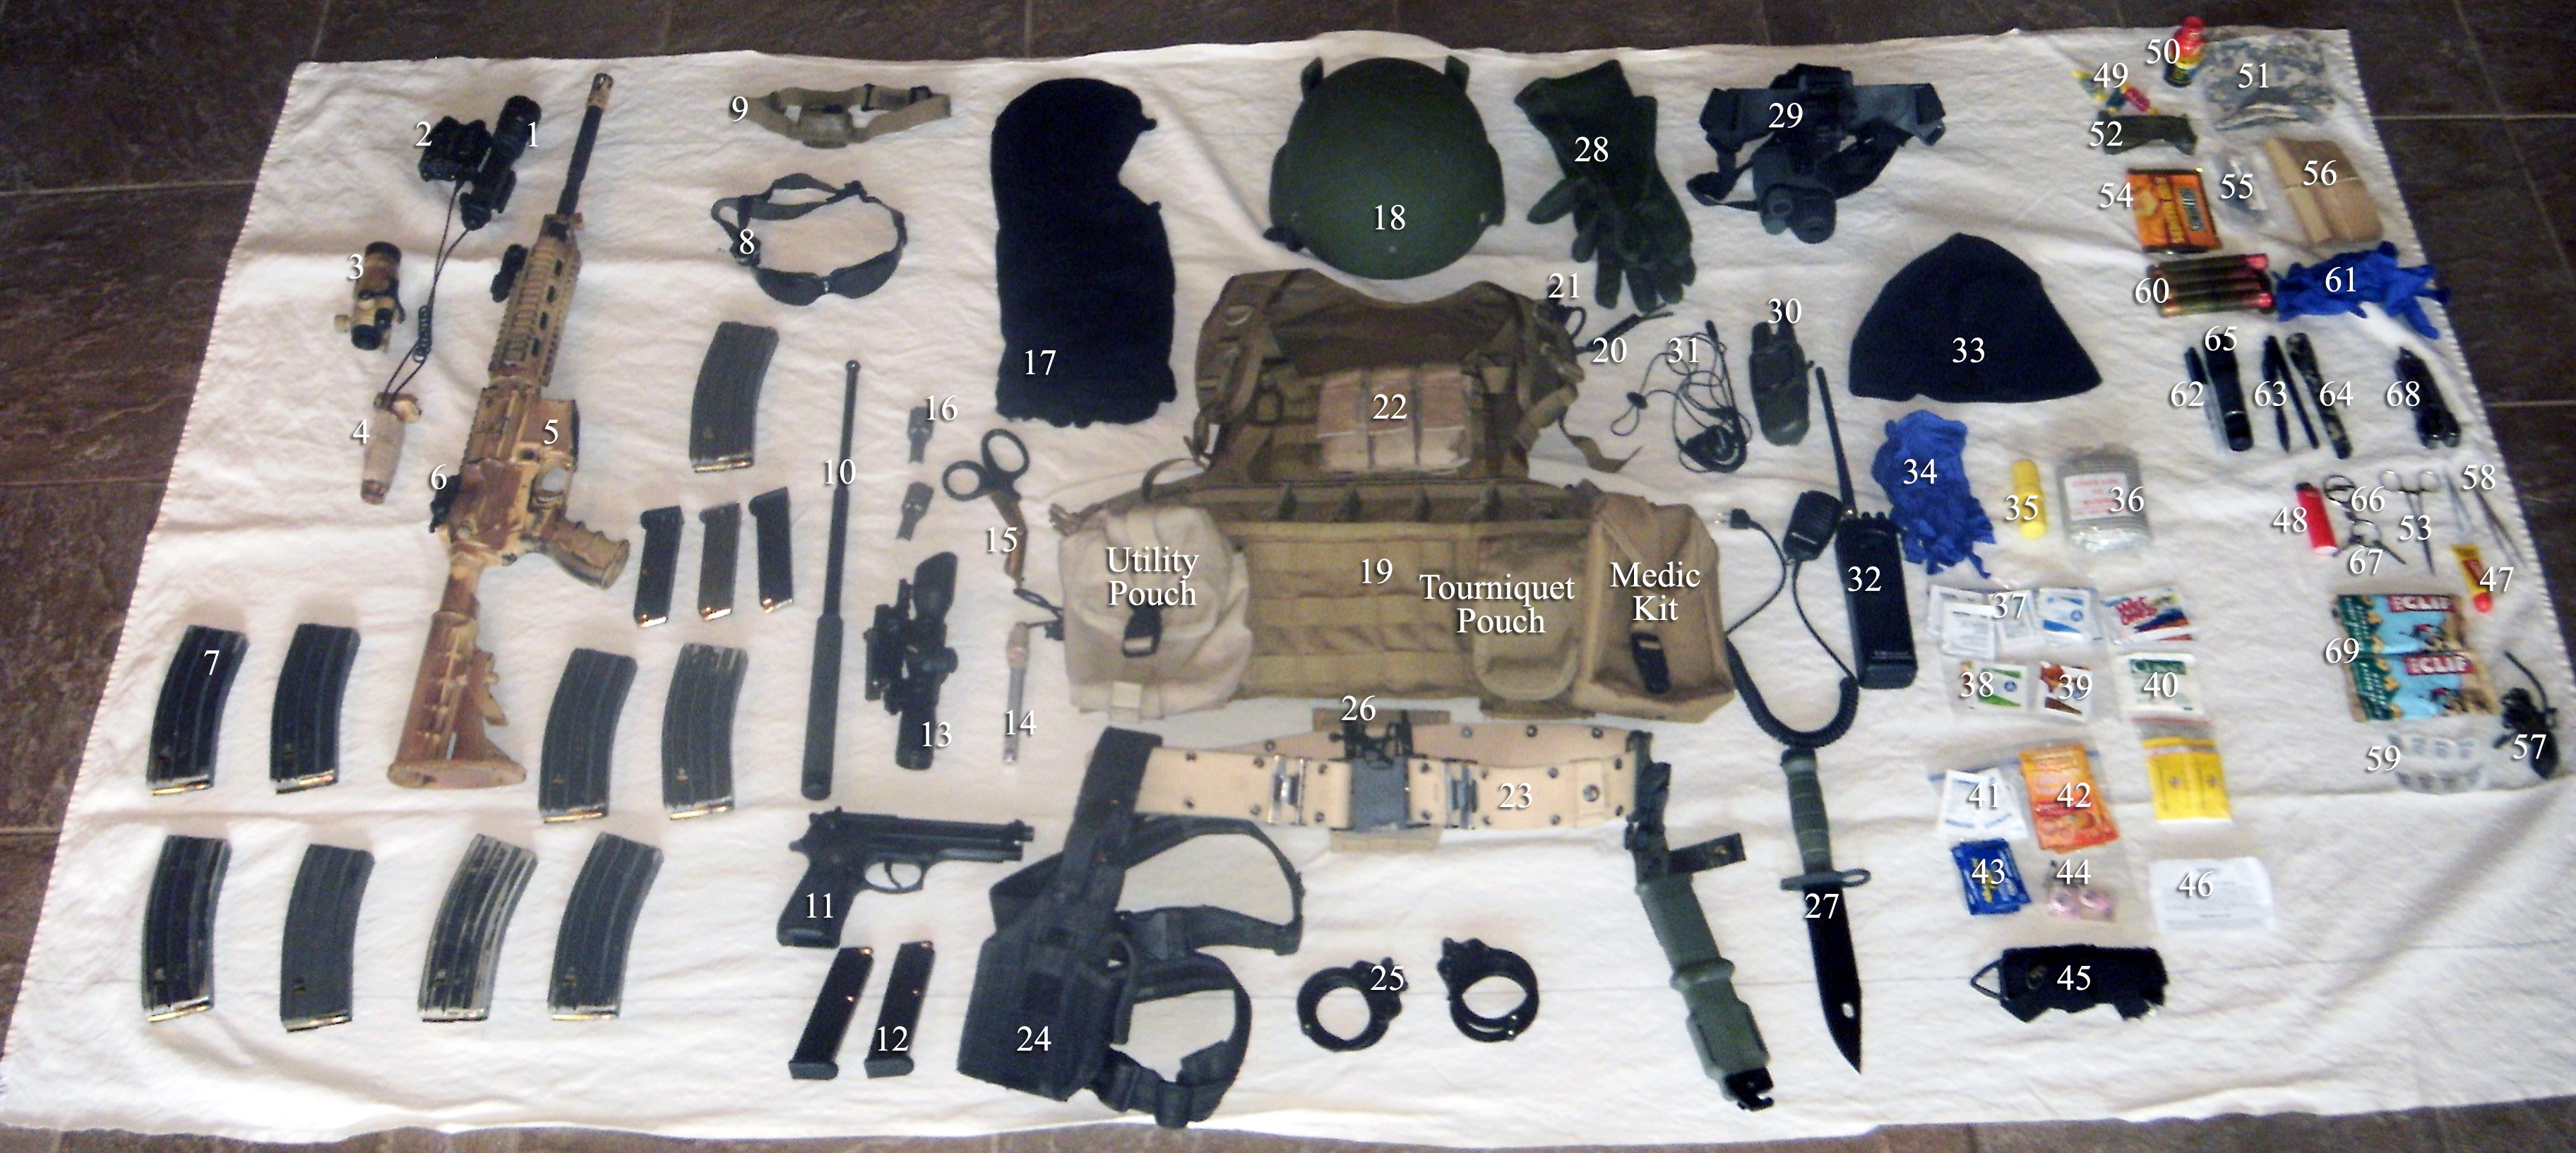 Itemized list of gear for the active prepper